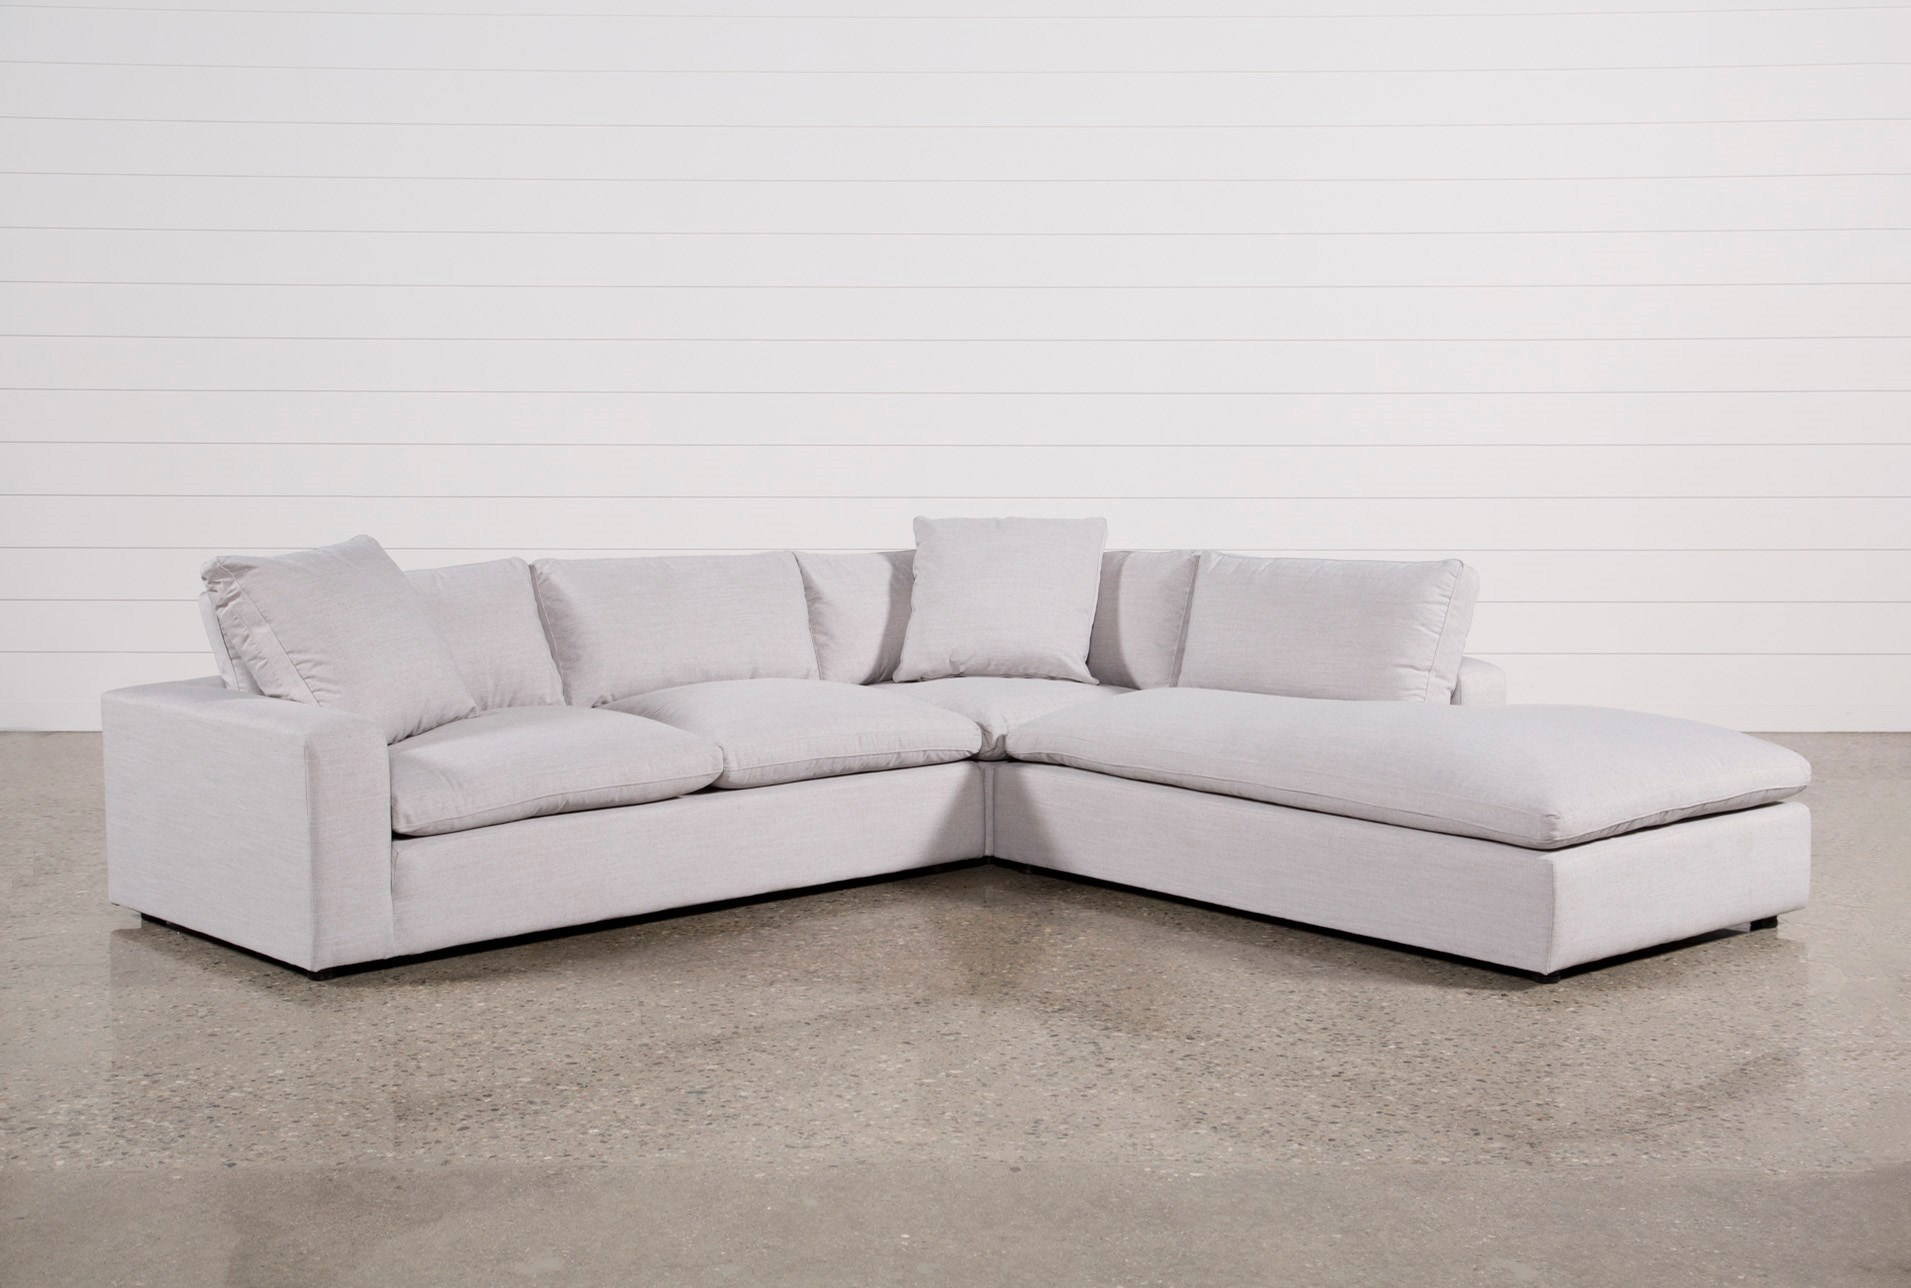 Haven 3 Piece Sectional Qty 1 Has Been Successfully Added To Your Cart